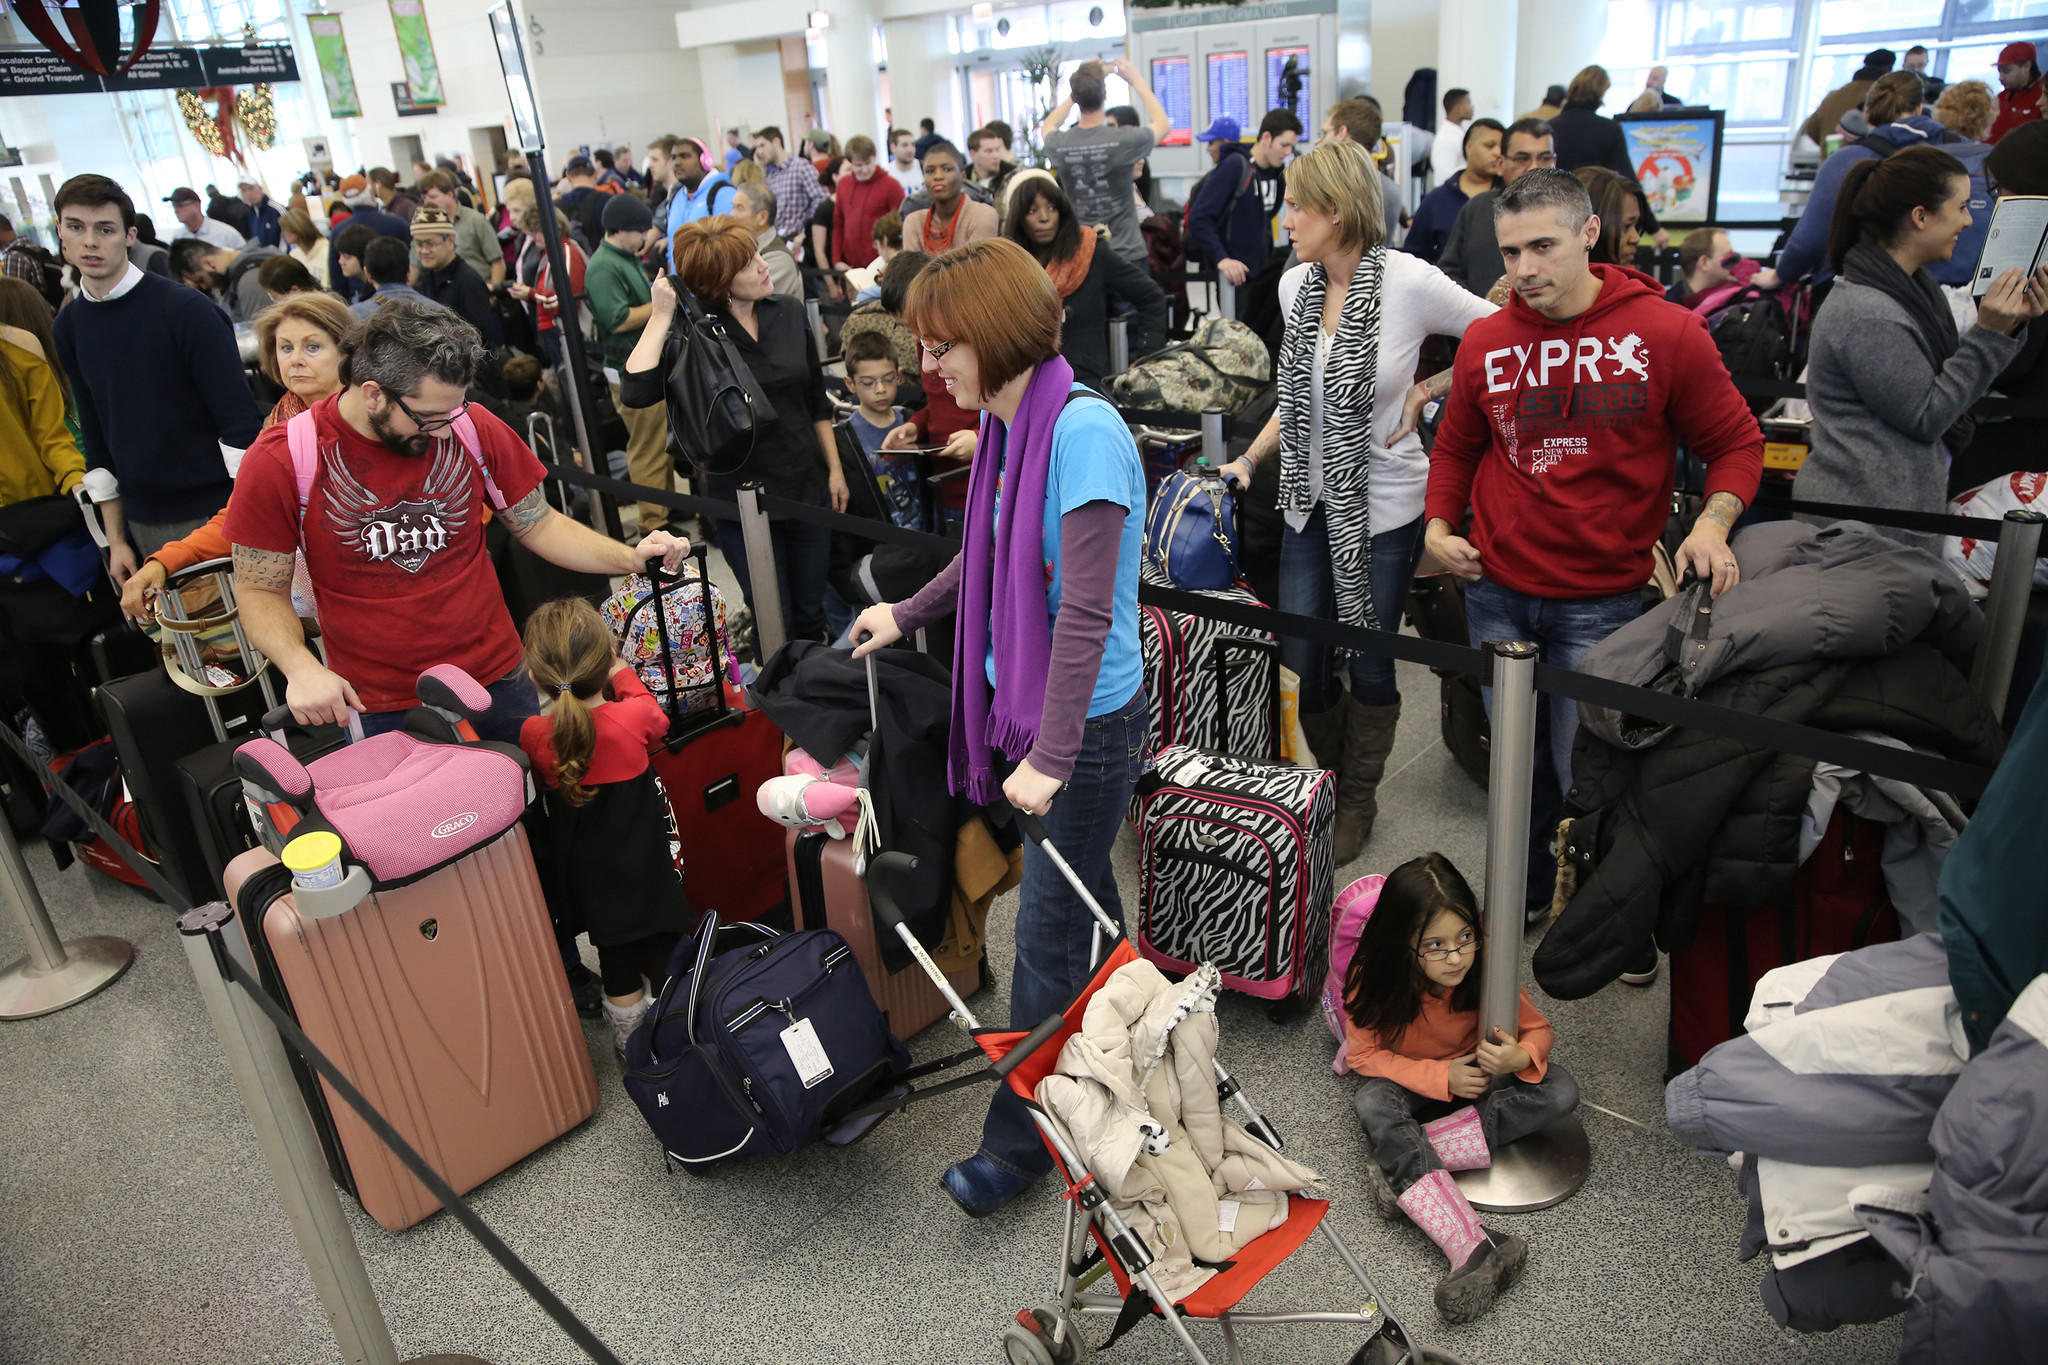 Hundreds of travelers wait in line for check in at Midway Airport, Friday, Jan. 3, 2014. Flights were later cancelled by Southwest Airlines.